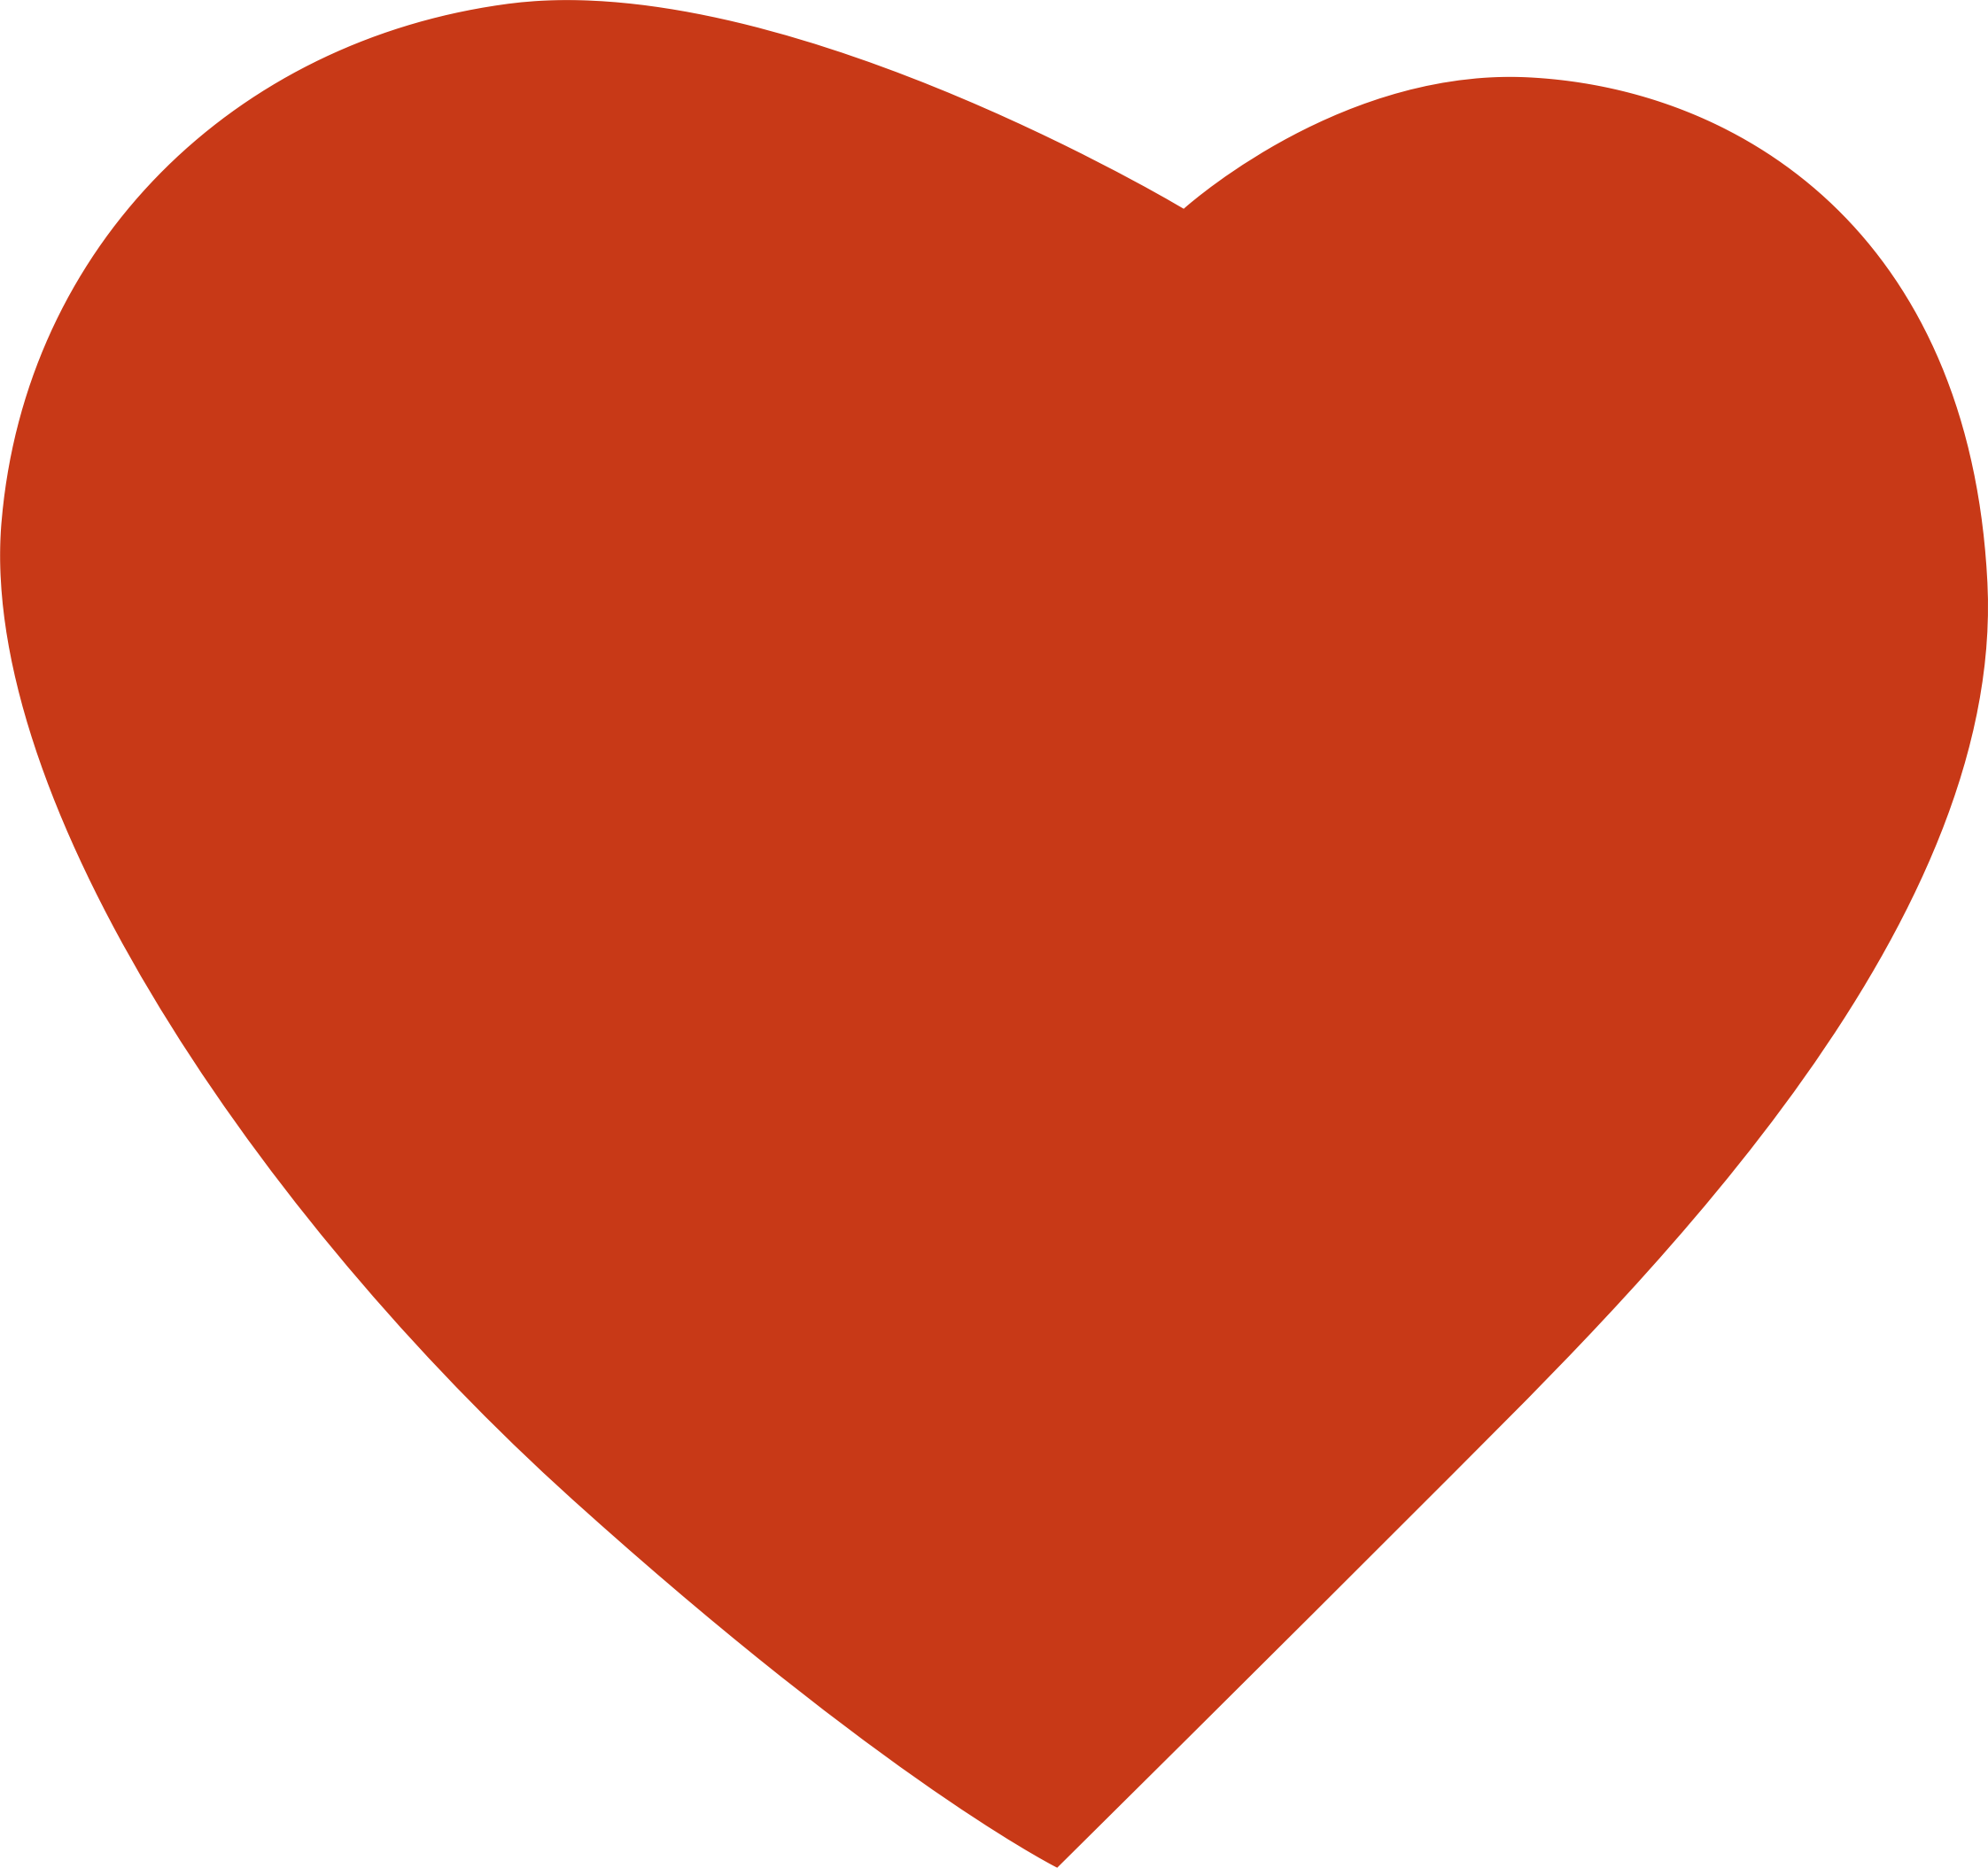 Clipart heart cuore for Clipart cuore